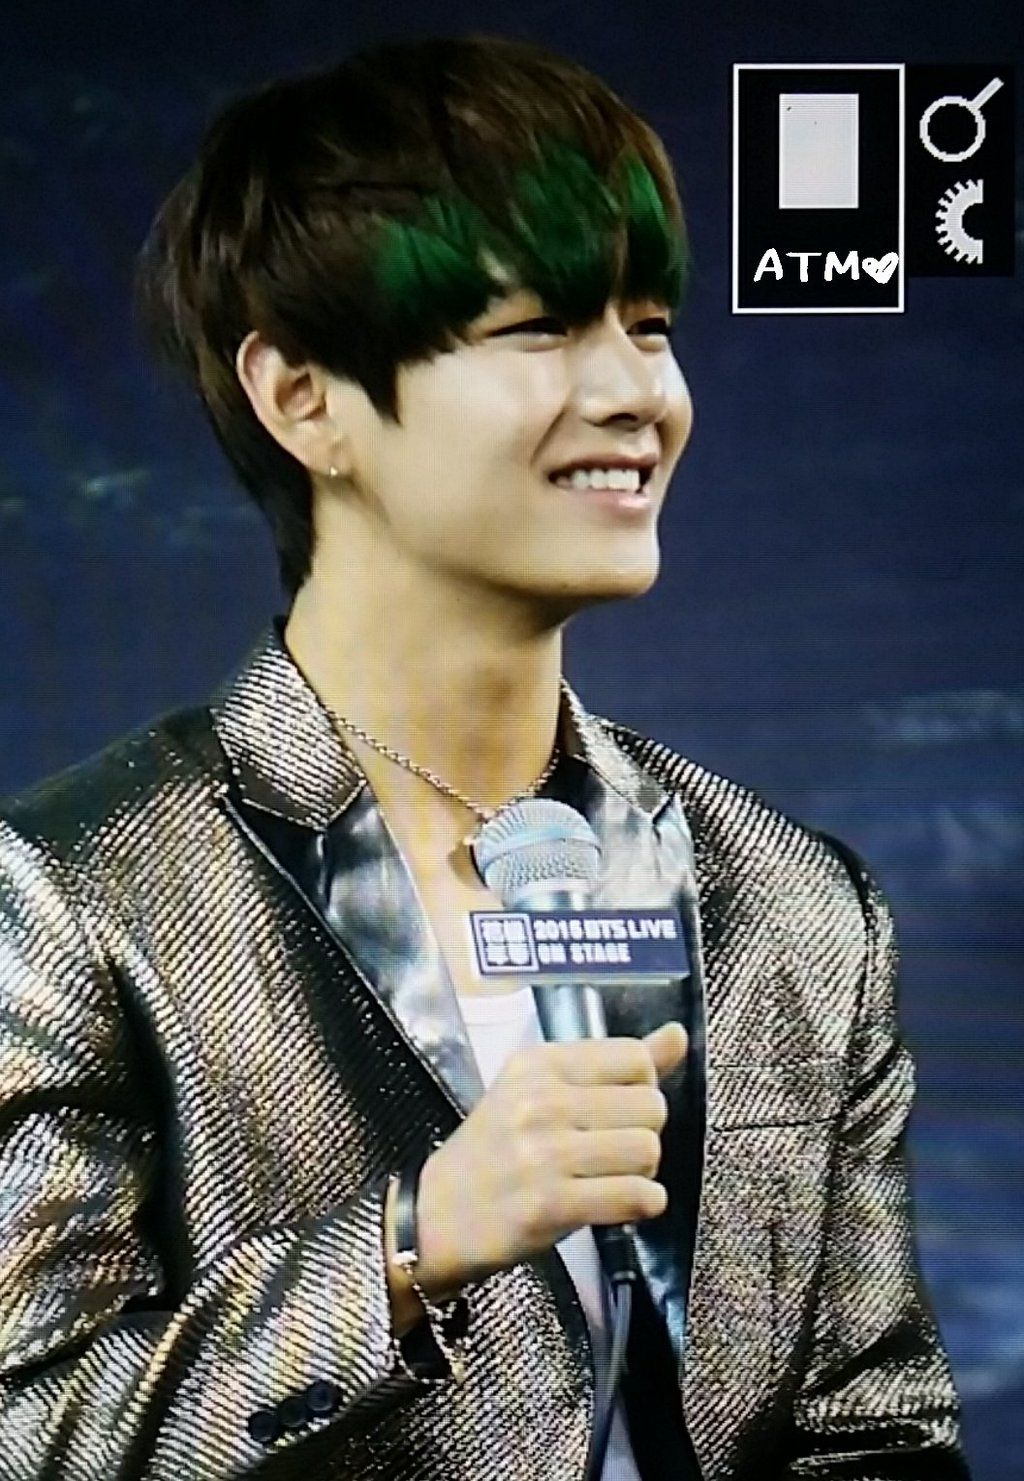 BTS / V (Kim TaeHyung) / [PictureMedia] BTS at Press Conference 2015 BTS LIVE CONCERT 화양연화 On Stage [27.11.2015]